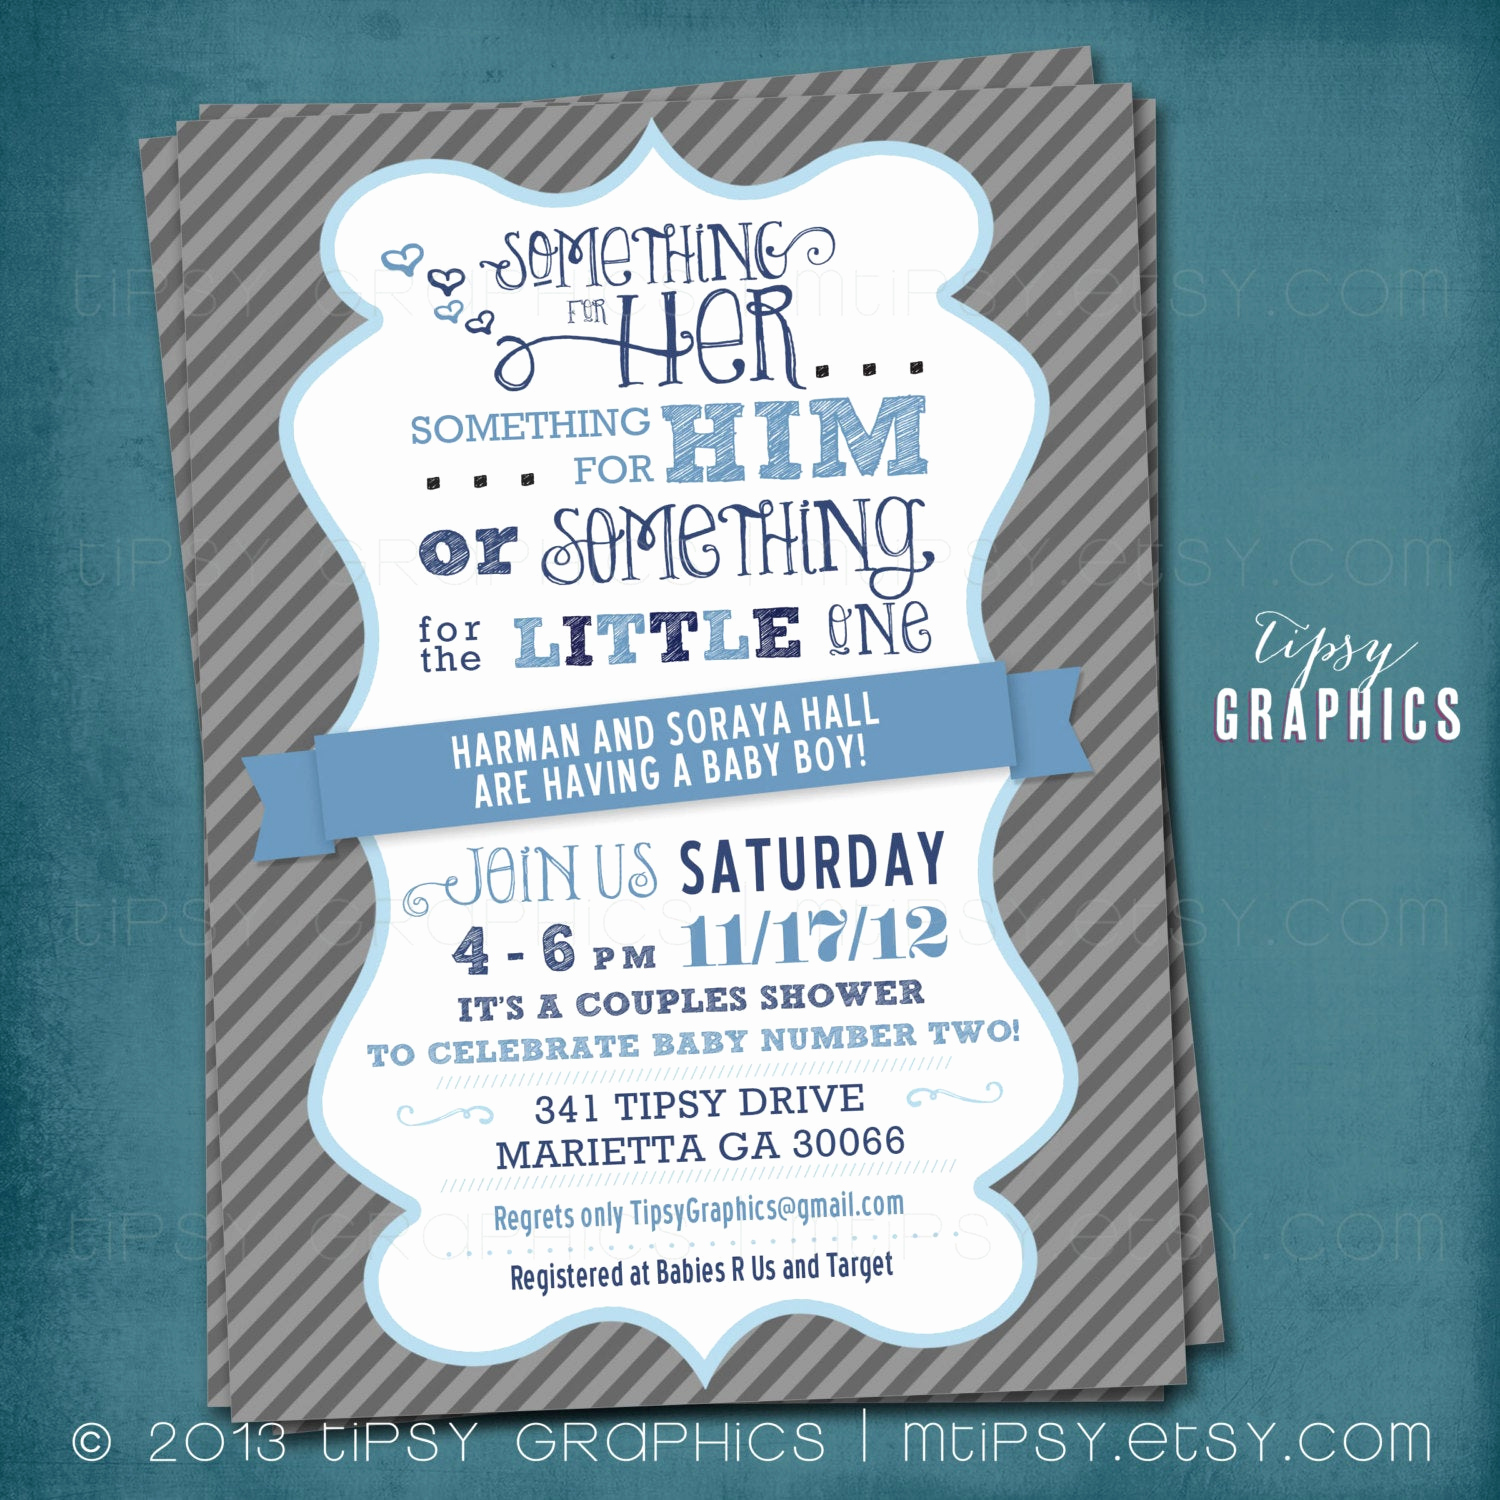 Couple Baby Shower Invitation Wording Best Of something for the Little E Couples Baby Shower Invite by